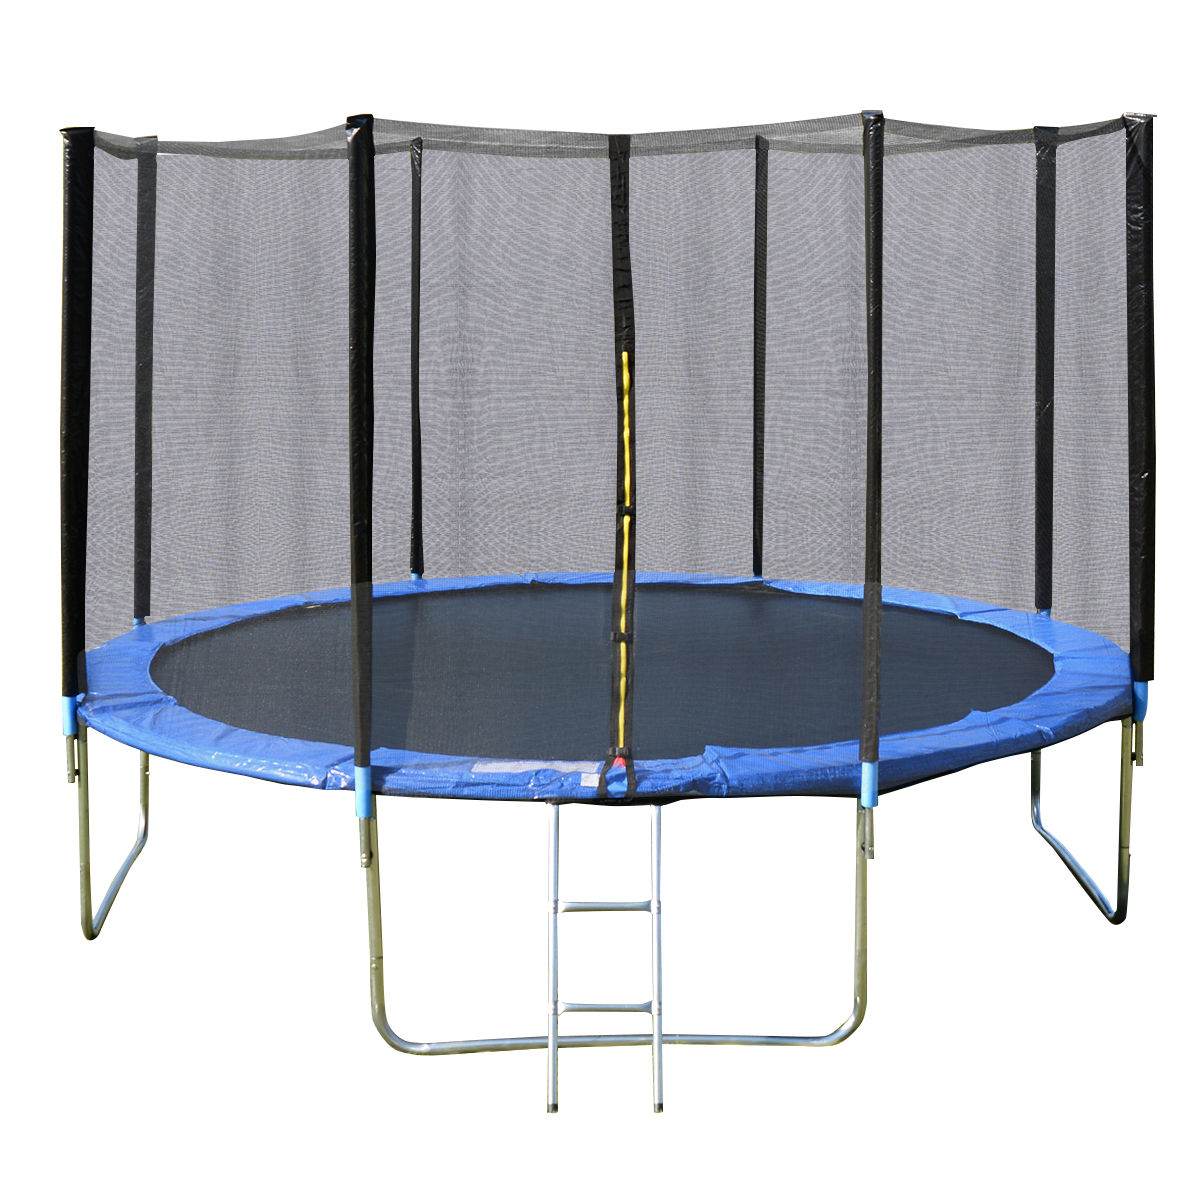 14 Ft Trampoline Combo Bounce Jump Safety: NEW HEAVY DUTY TRAMPOLINE 14 FT WITH LADDER & SAFETY NET